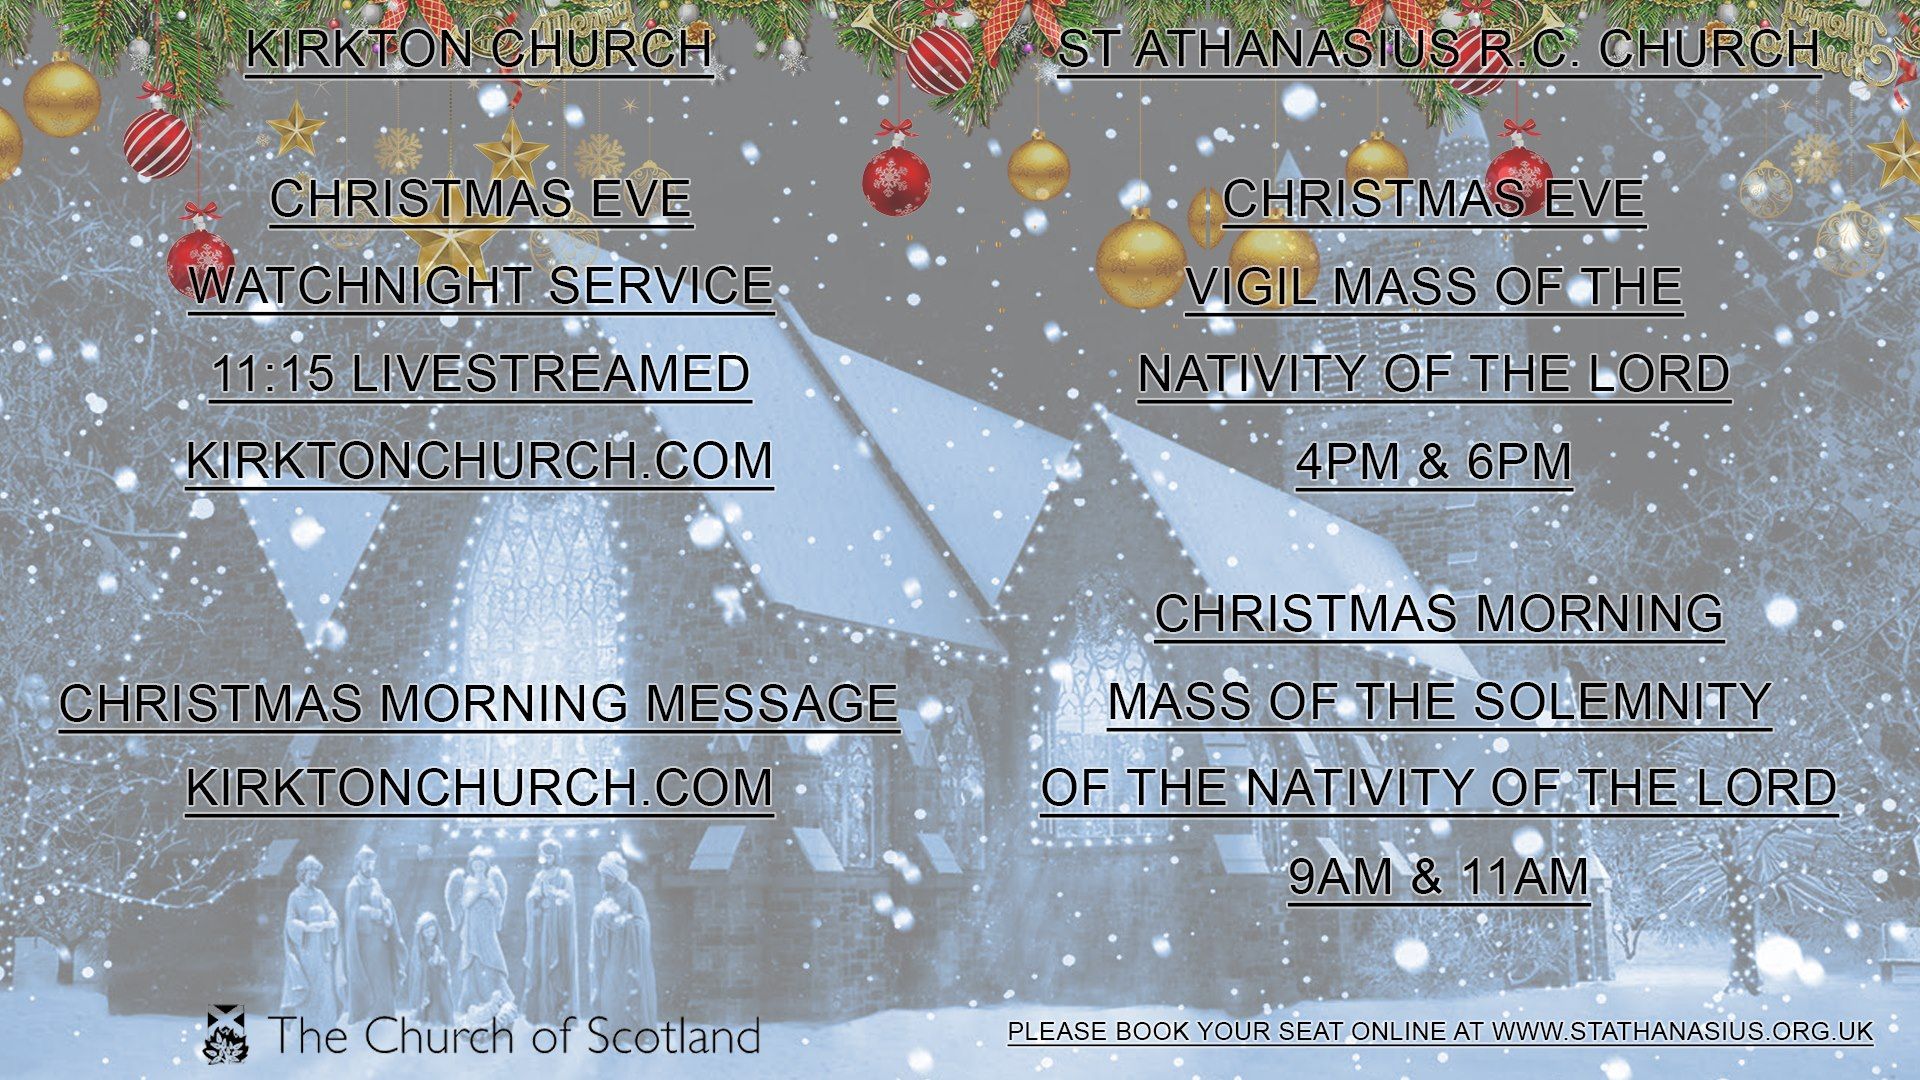 Kirkton Church and St Athanasius Christmas Opening Times